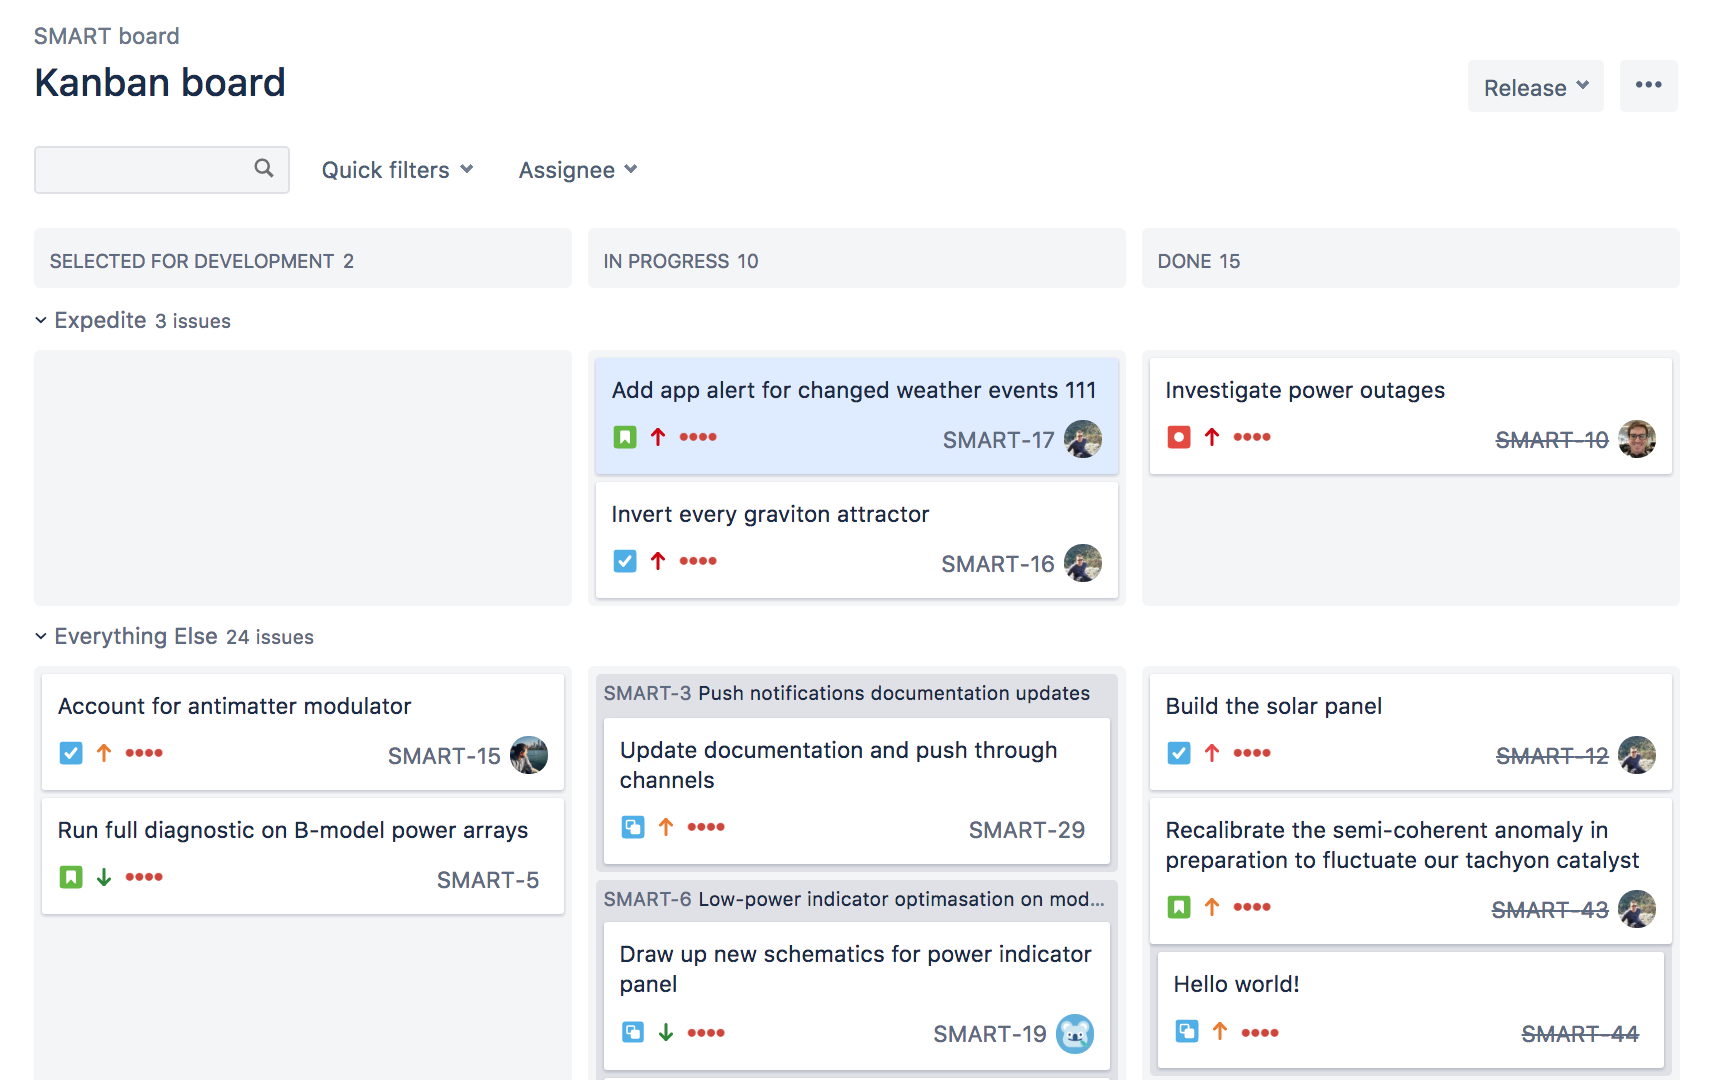 Screenshot of a Kanban board in a Jira Software Cloud showing tasks in different columns and swimlanes.